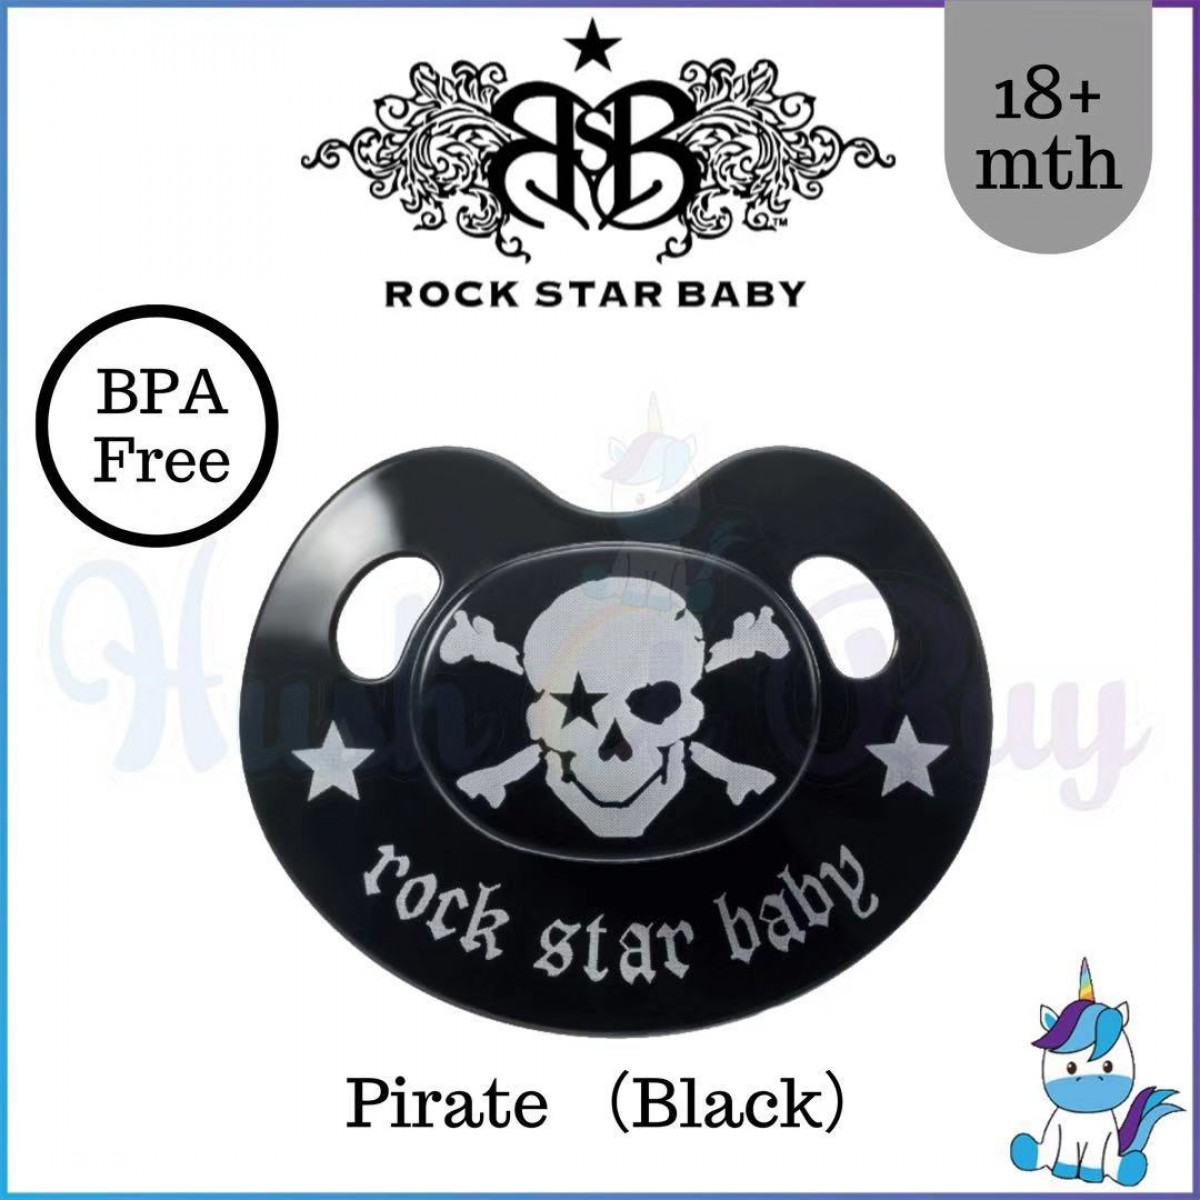 RockStar Baby Silicone Pacifiers / Soothers Ortho with Cover Single -18+ mth ROSE//PIRATE//HEART WINGS